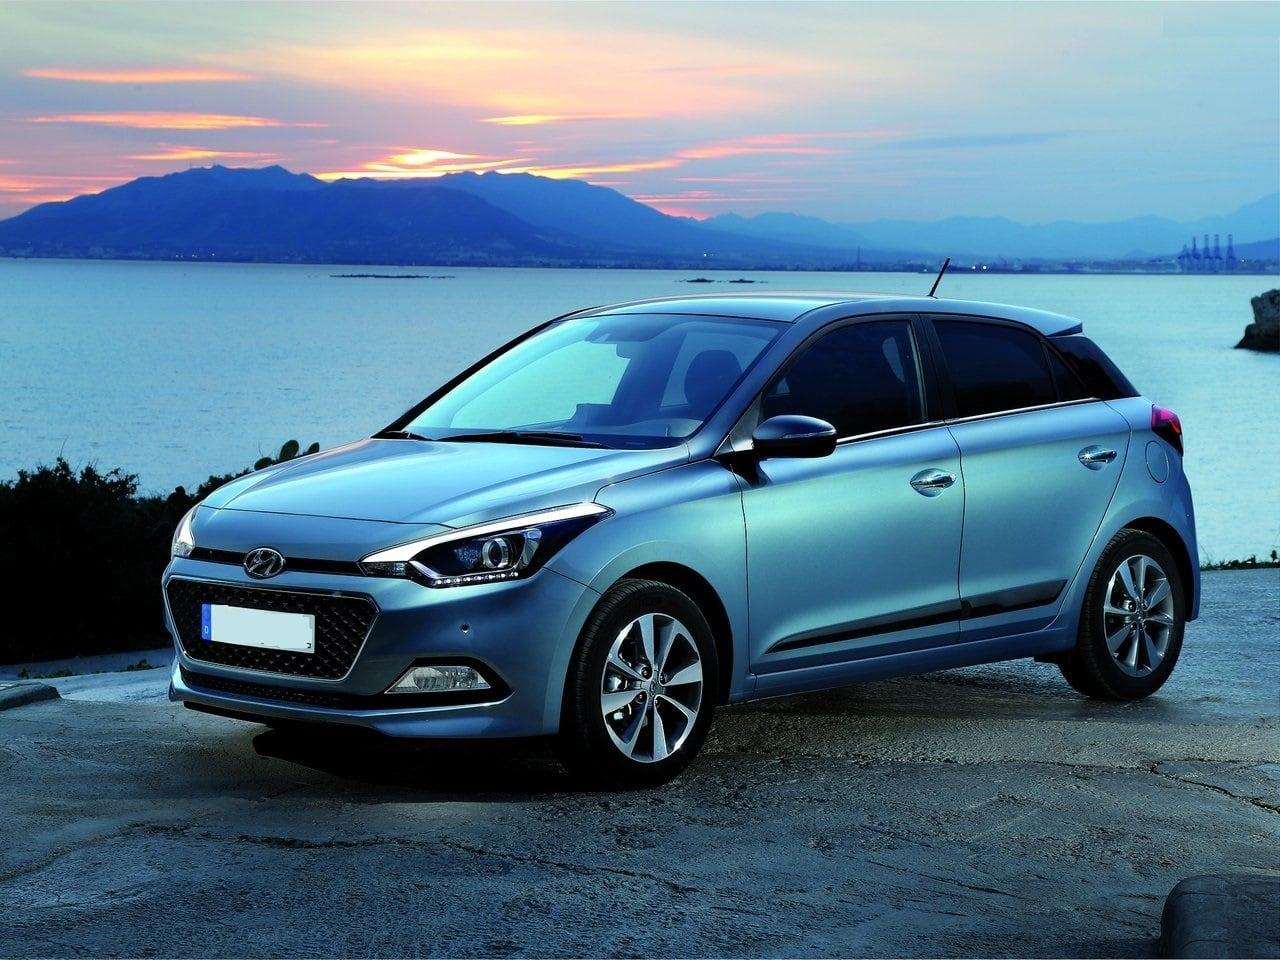 2017 Hyundai Elite I20 Facelift Price Specifications Mileage Launch Date Features Colours Warranty Review